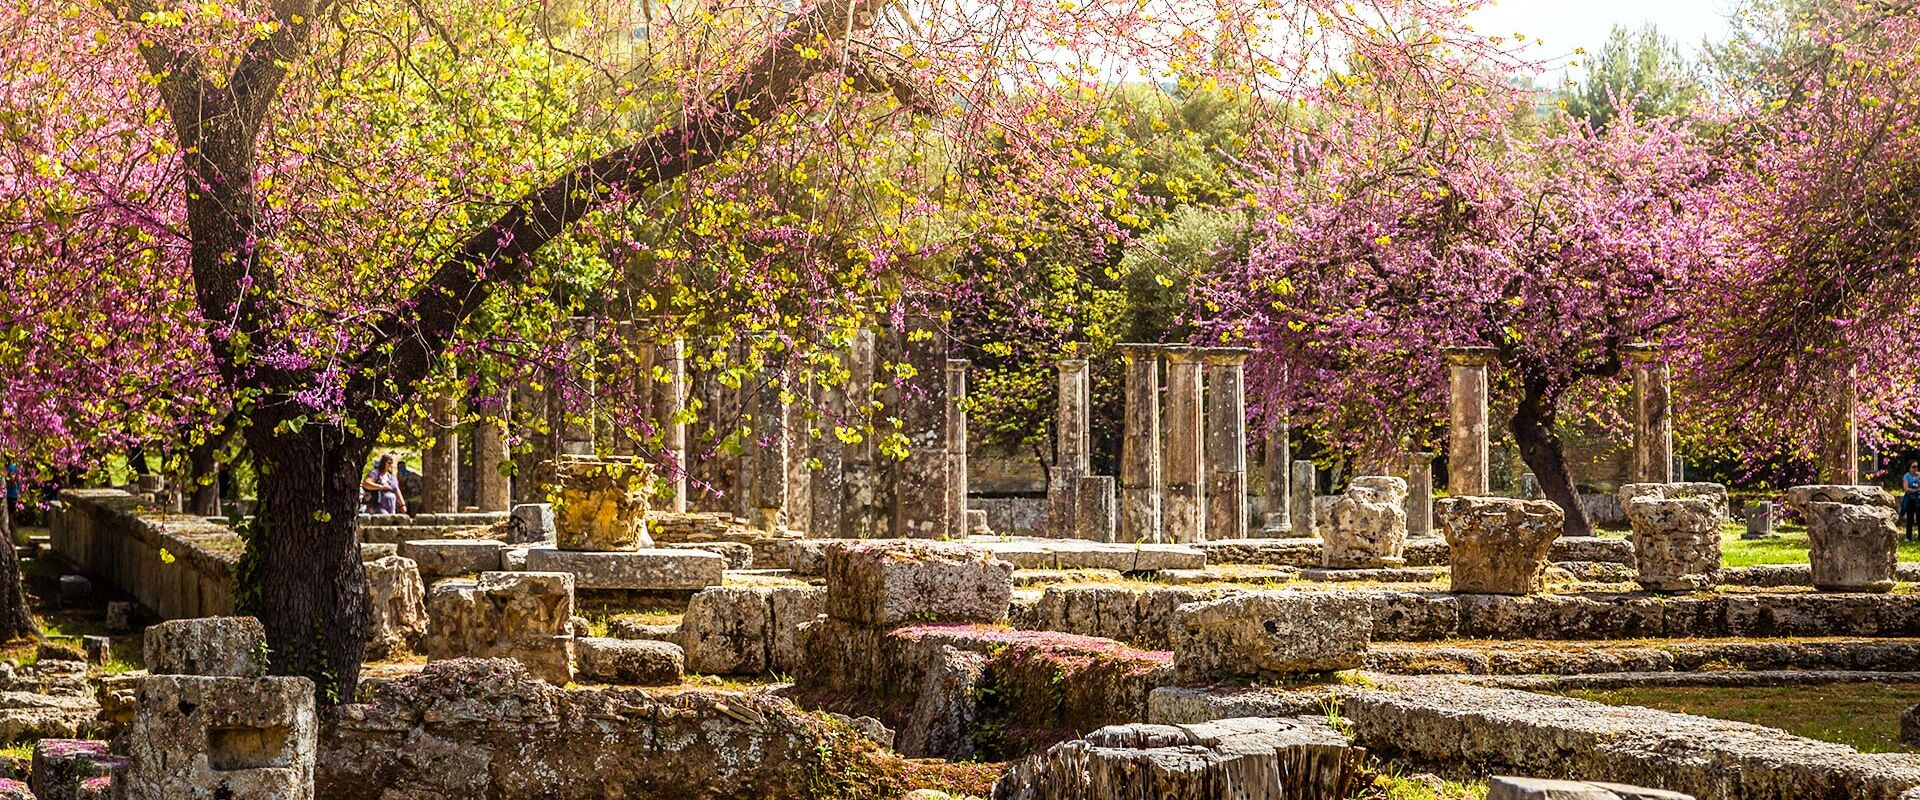 The best experience in Ancient Olympia, is in spring when the olive groves and flowers are in bloom